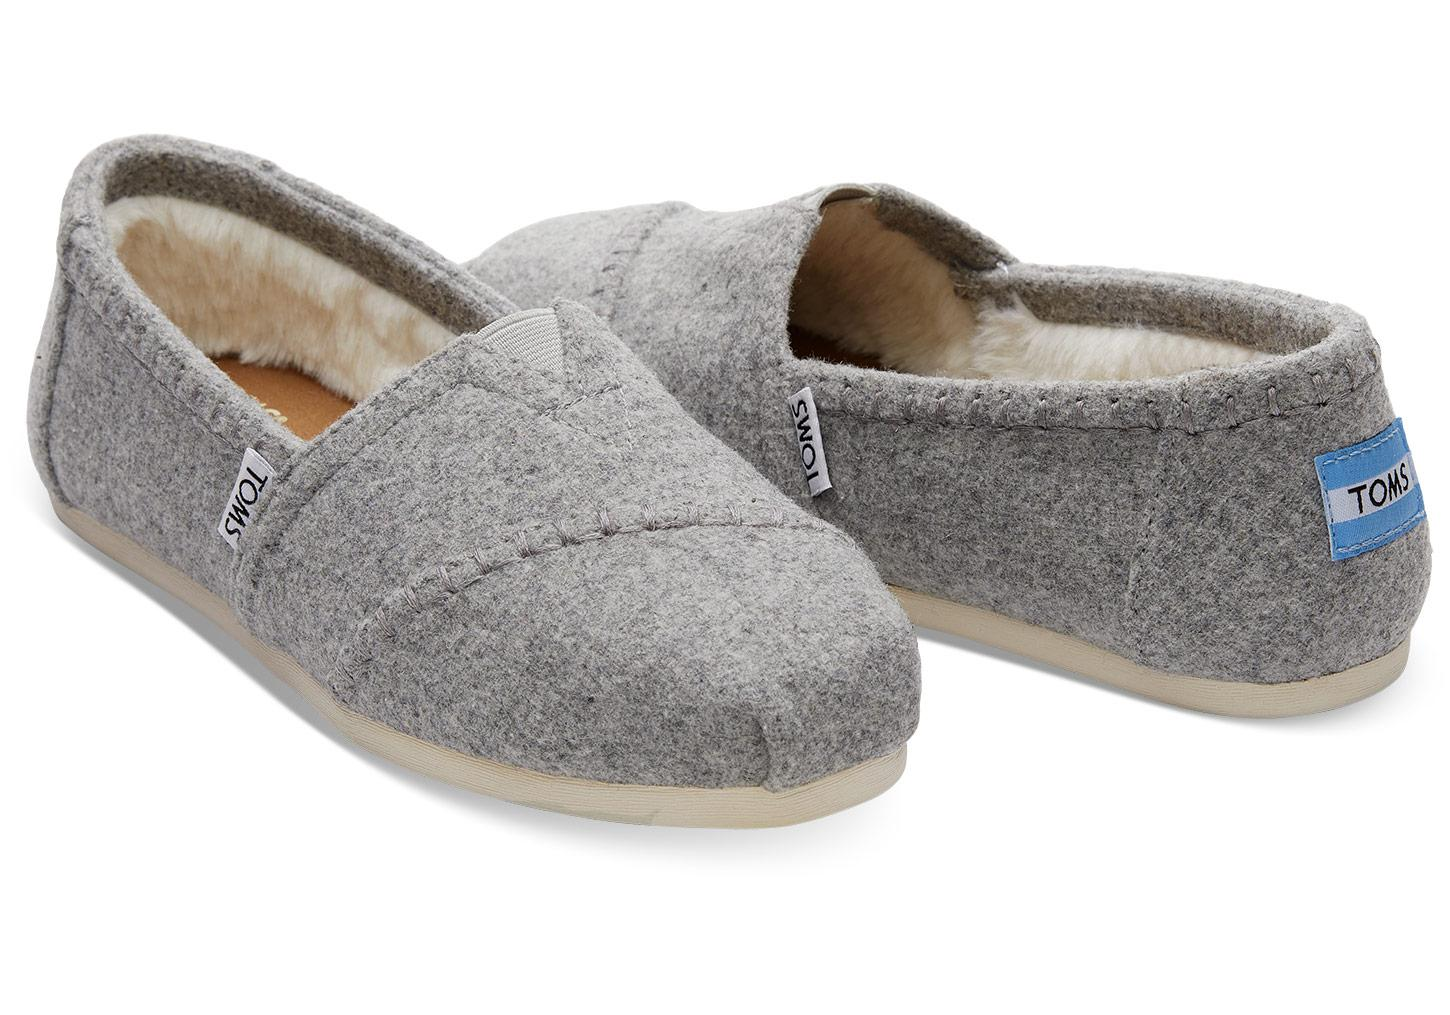 TOMS Drizzle Grey Wool Women s Classics in Gray - Lyst 6cf06912a0